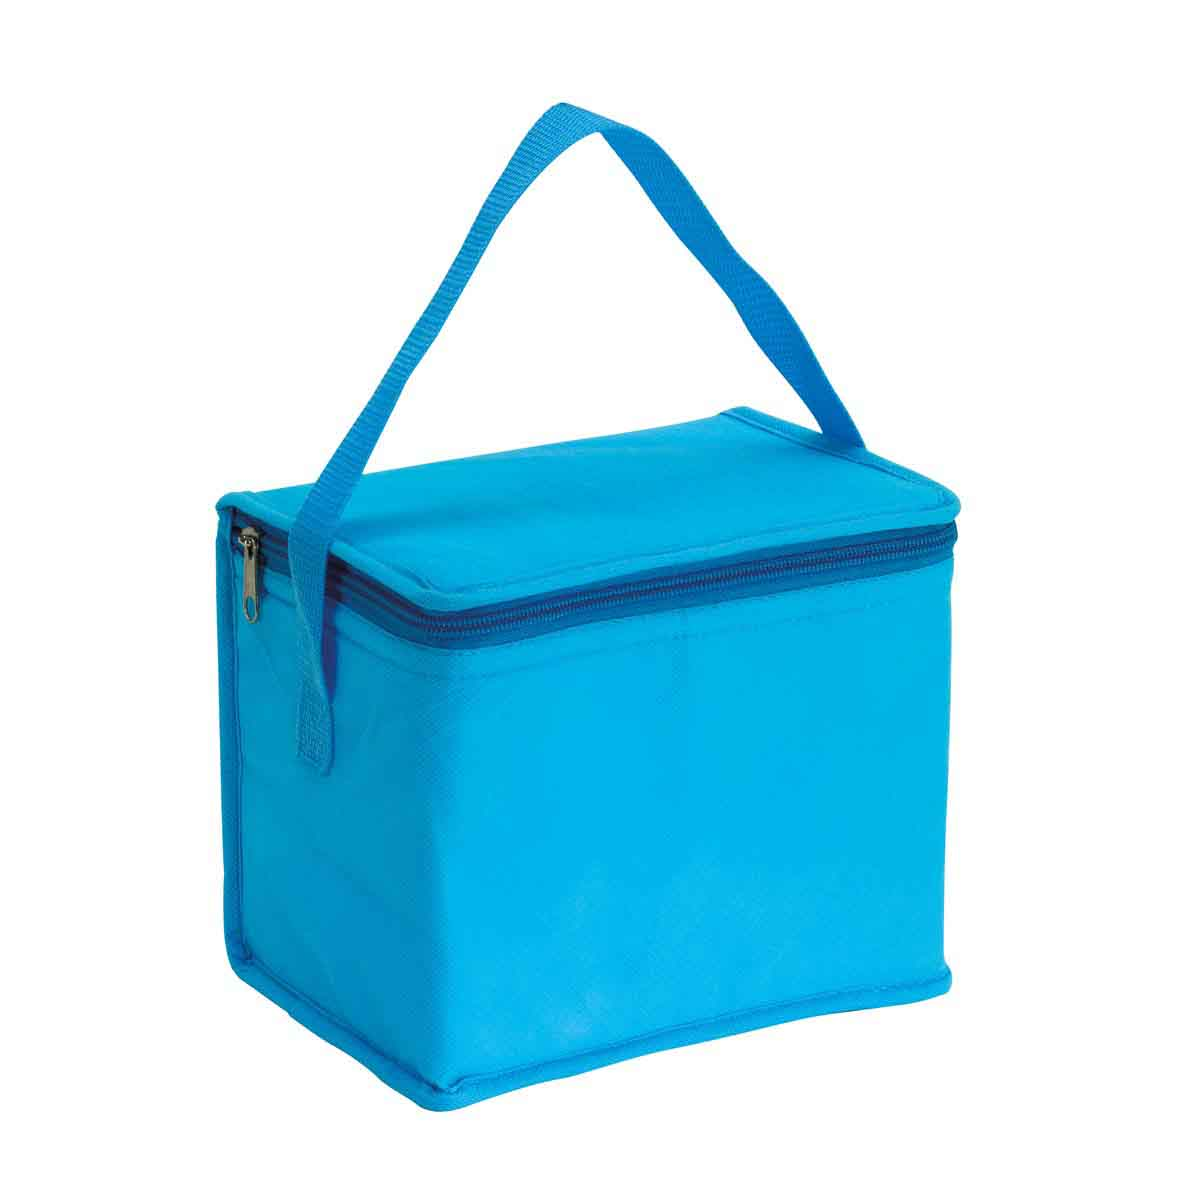 Cooler bag 'Celsius': with insulated zip pocket and carrying handle. - Light Blue ins-0801133